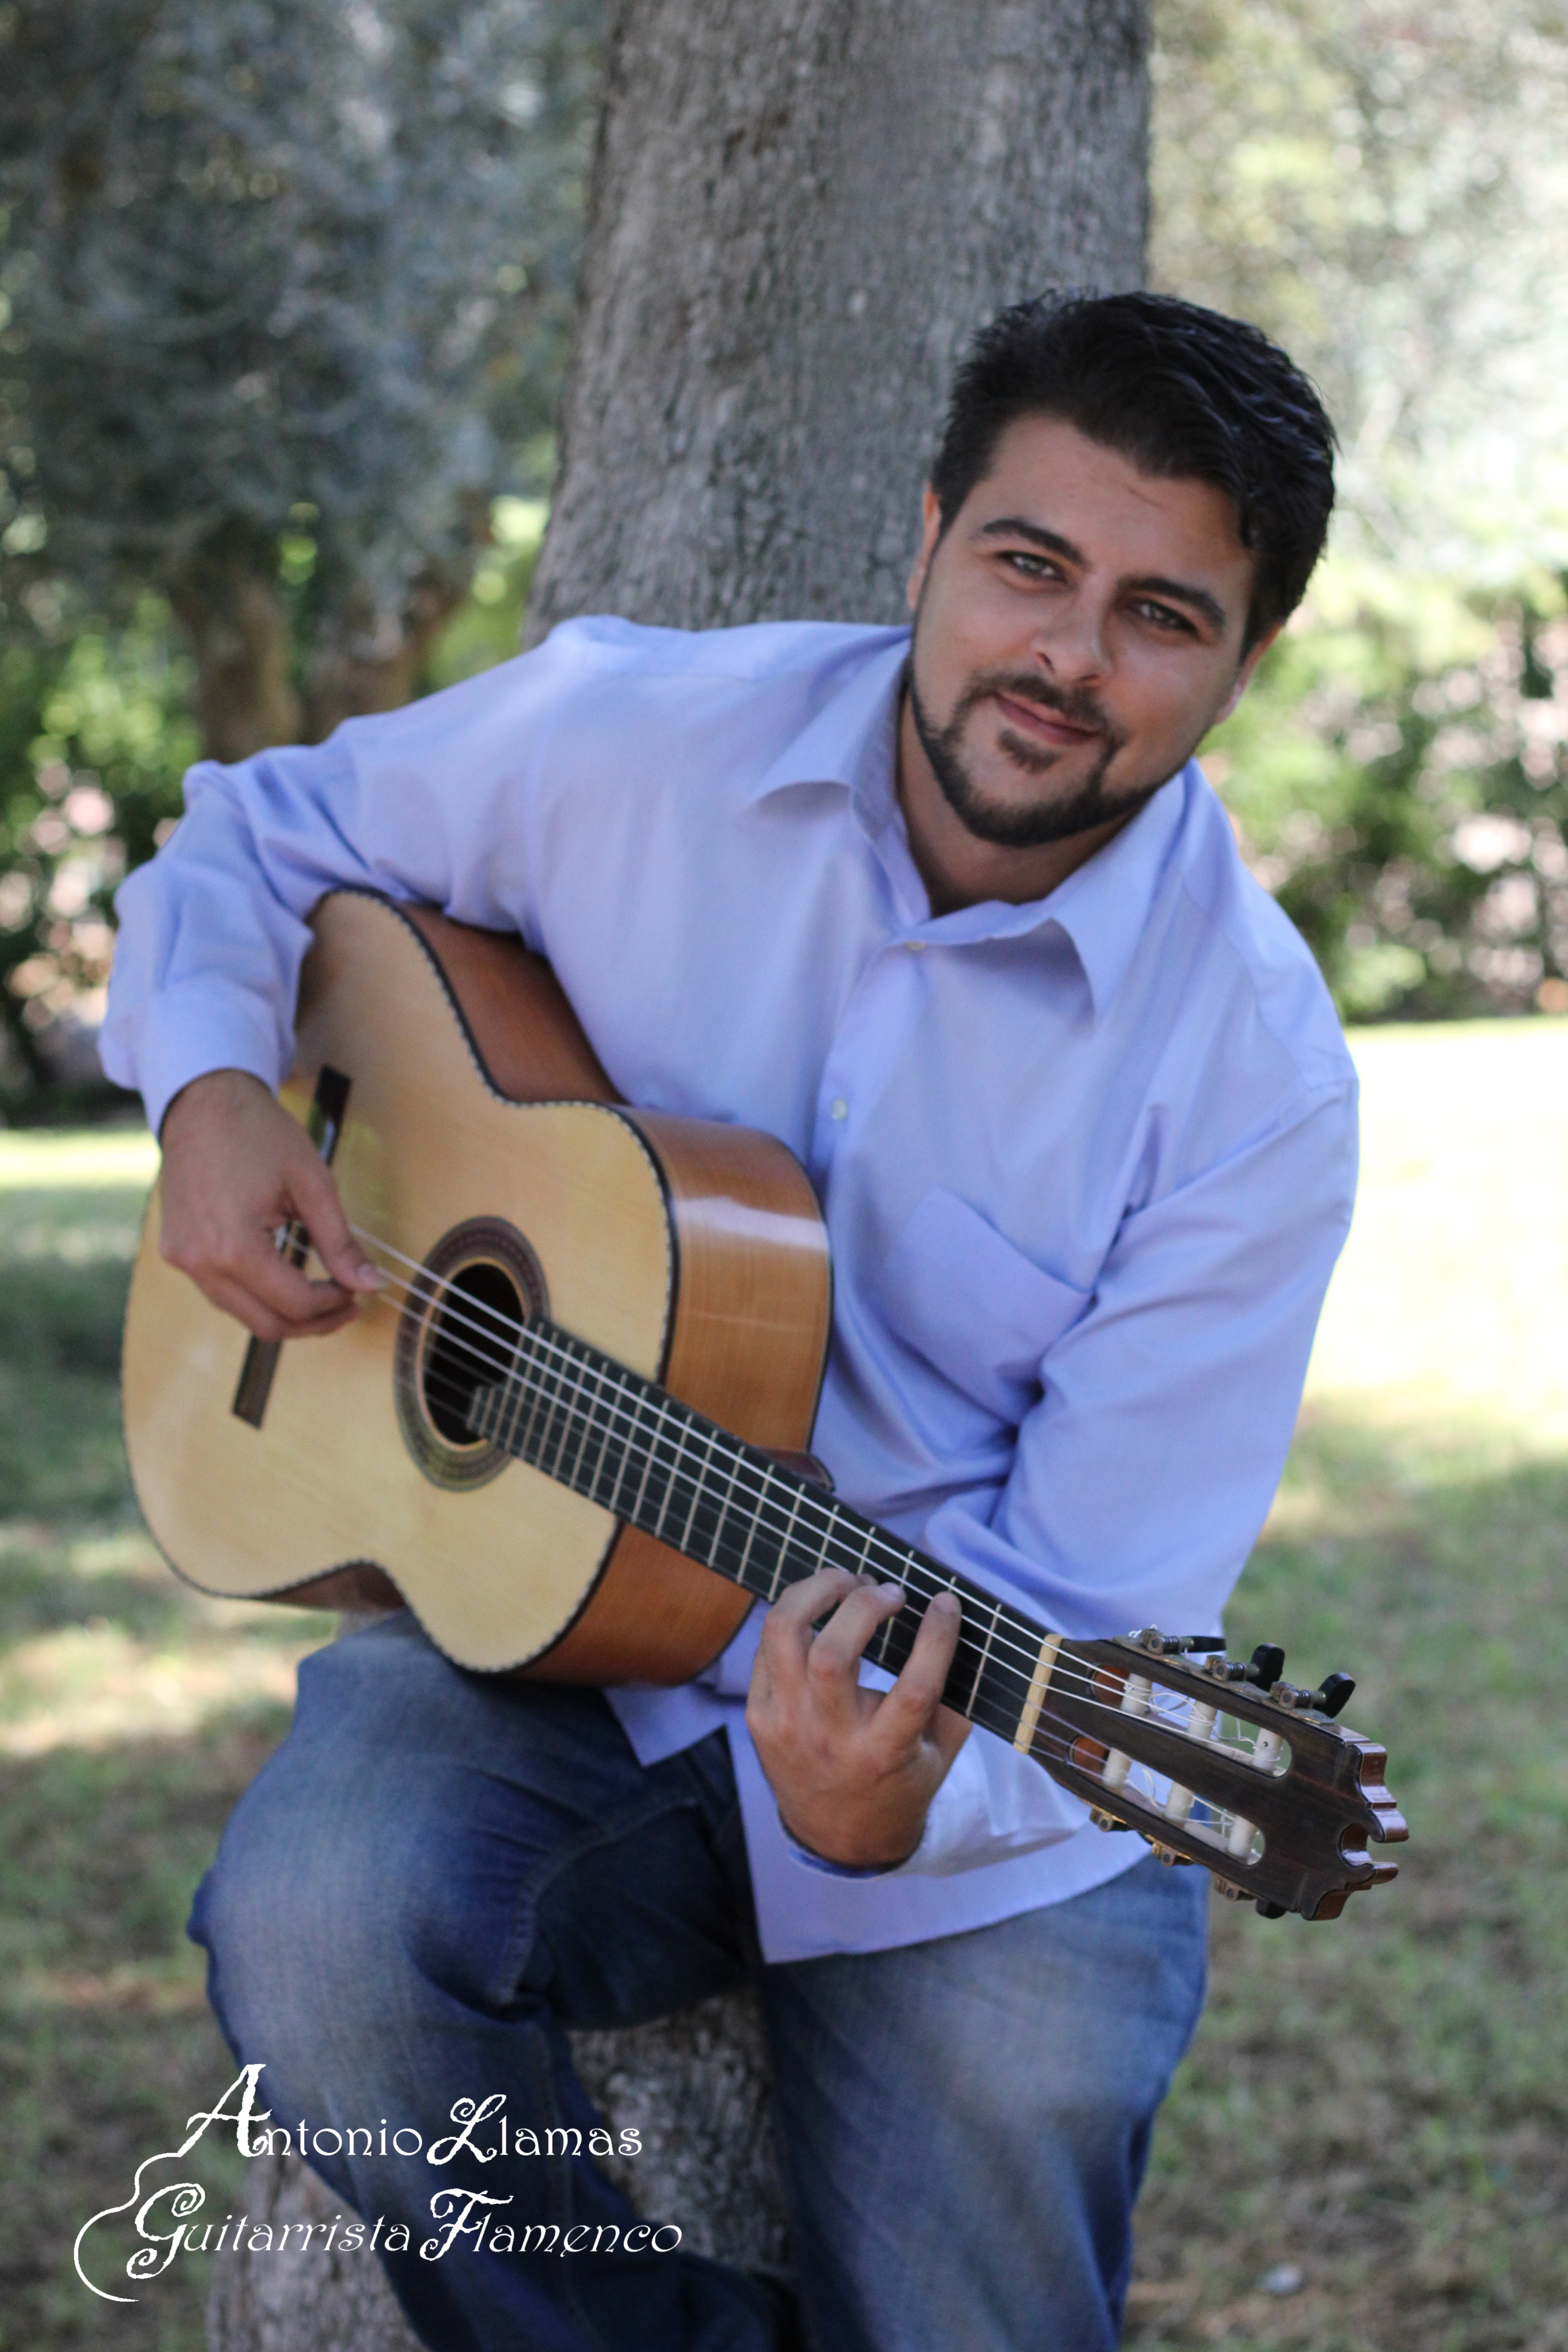 ANTONIO LLAMAS, GUITARRISTA FLAMENCO